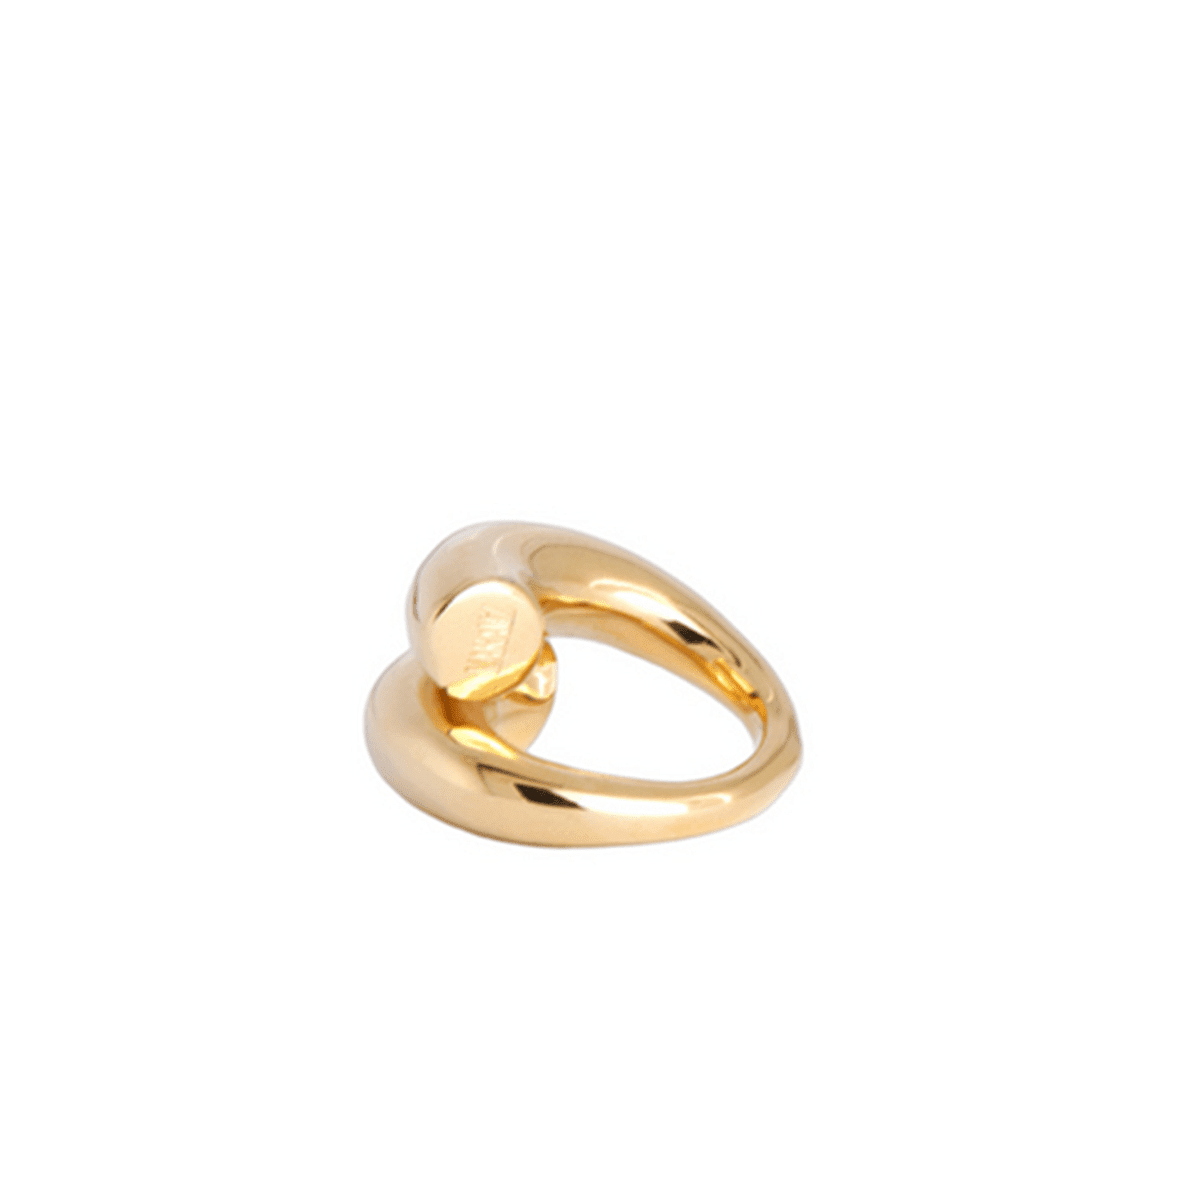 Double-Layer 18k Gold-Plated Spiral Ring